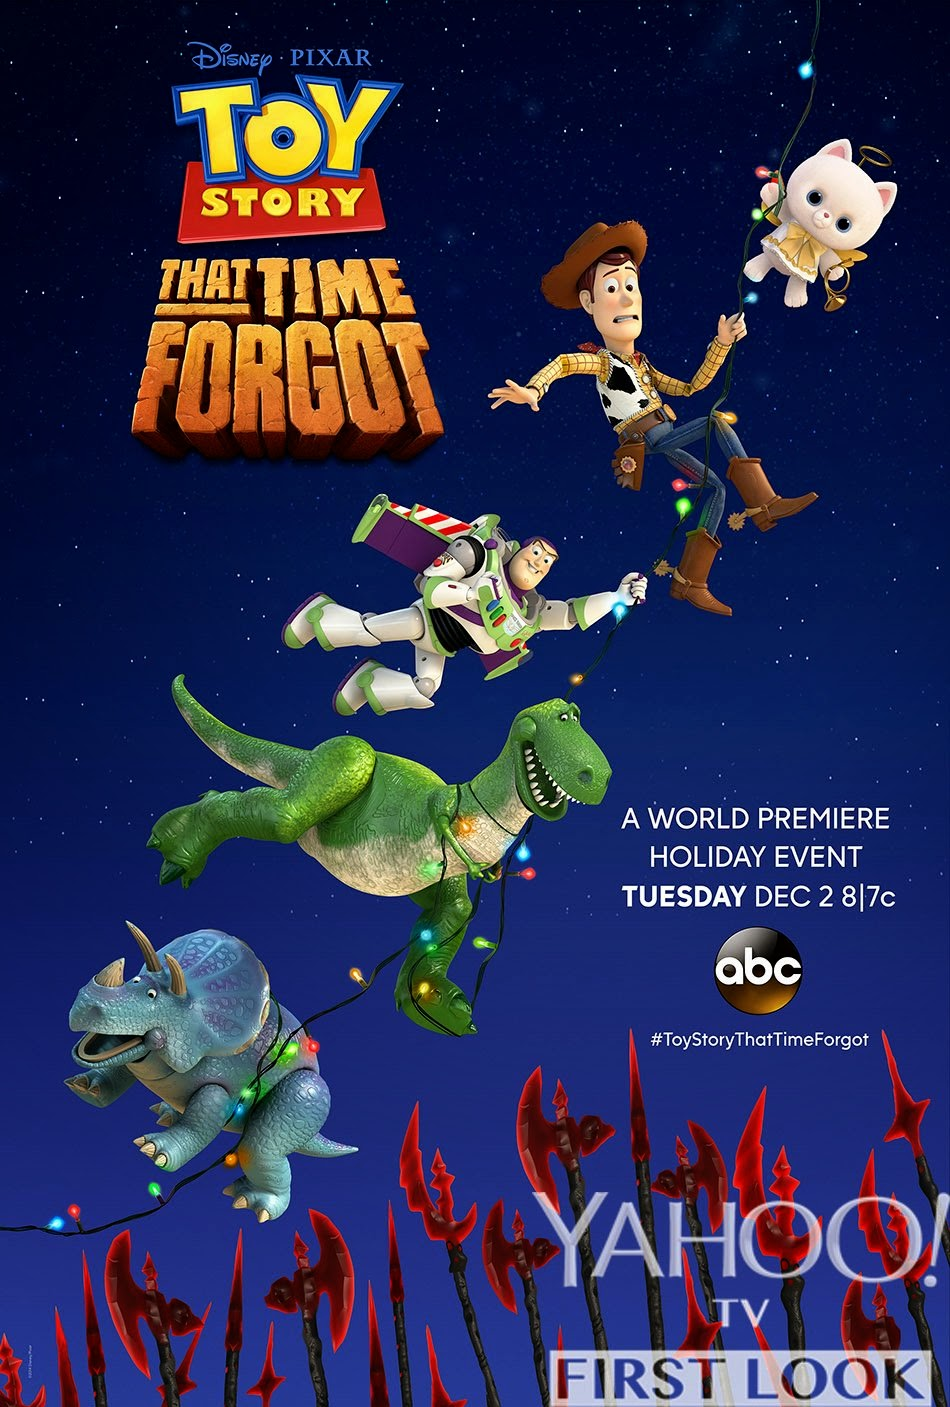 toy story that time forgot airs tonight - Toy Story Christmas Movie